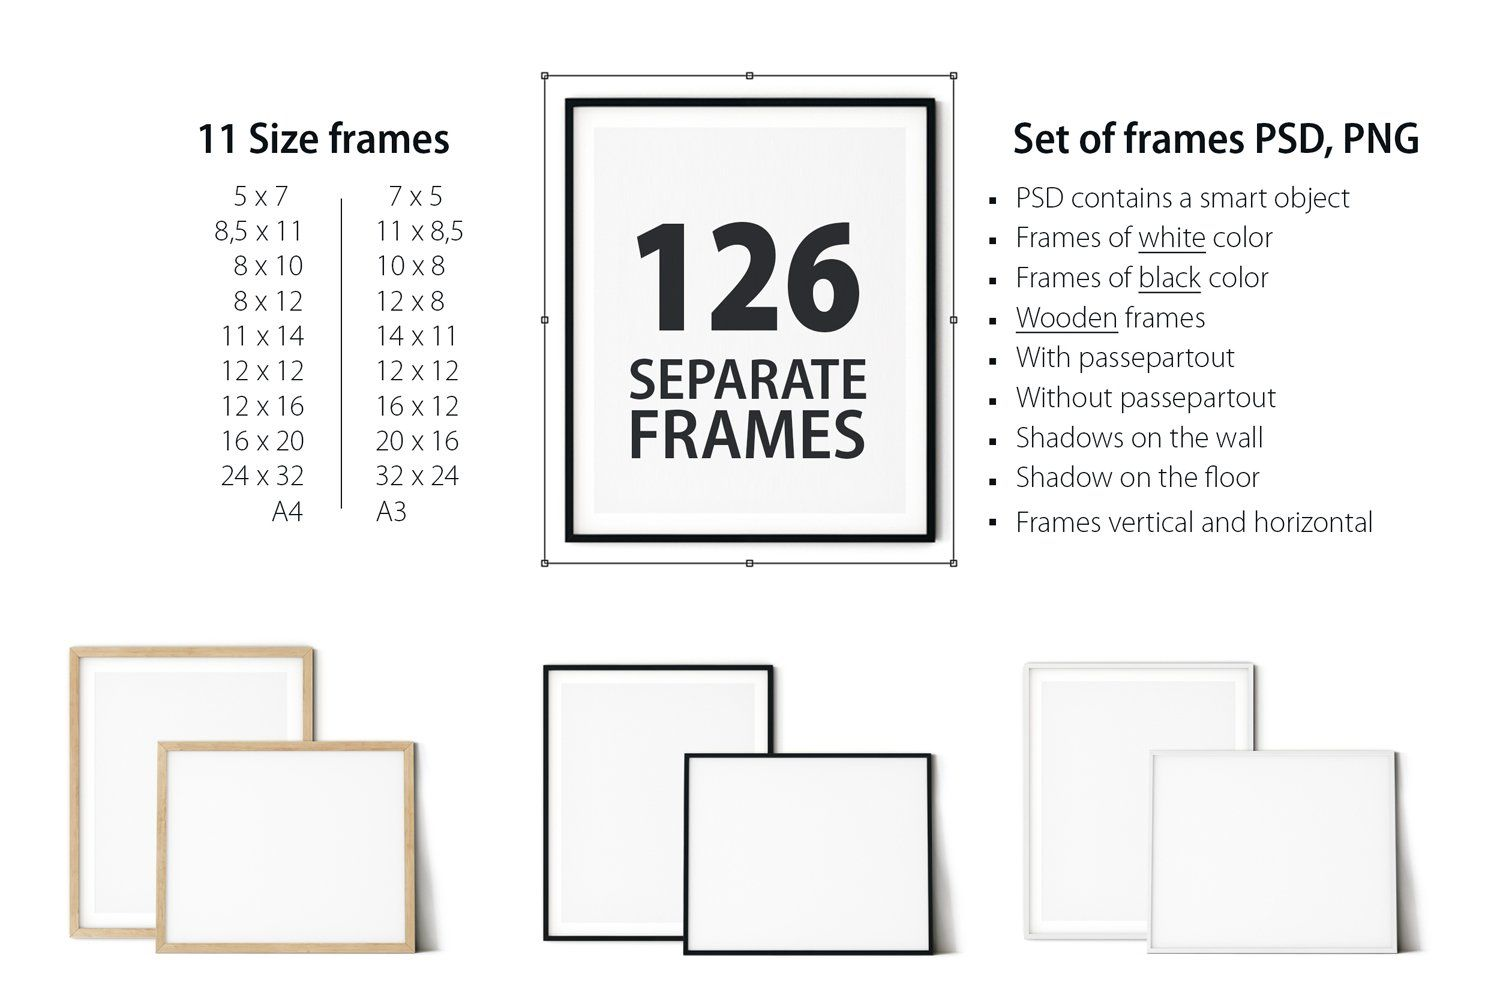 Perfect for Branding your creation or business Frame mockups good to use for shop owners artists creative people bloggers who want to advertise or show their latest desig...